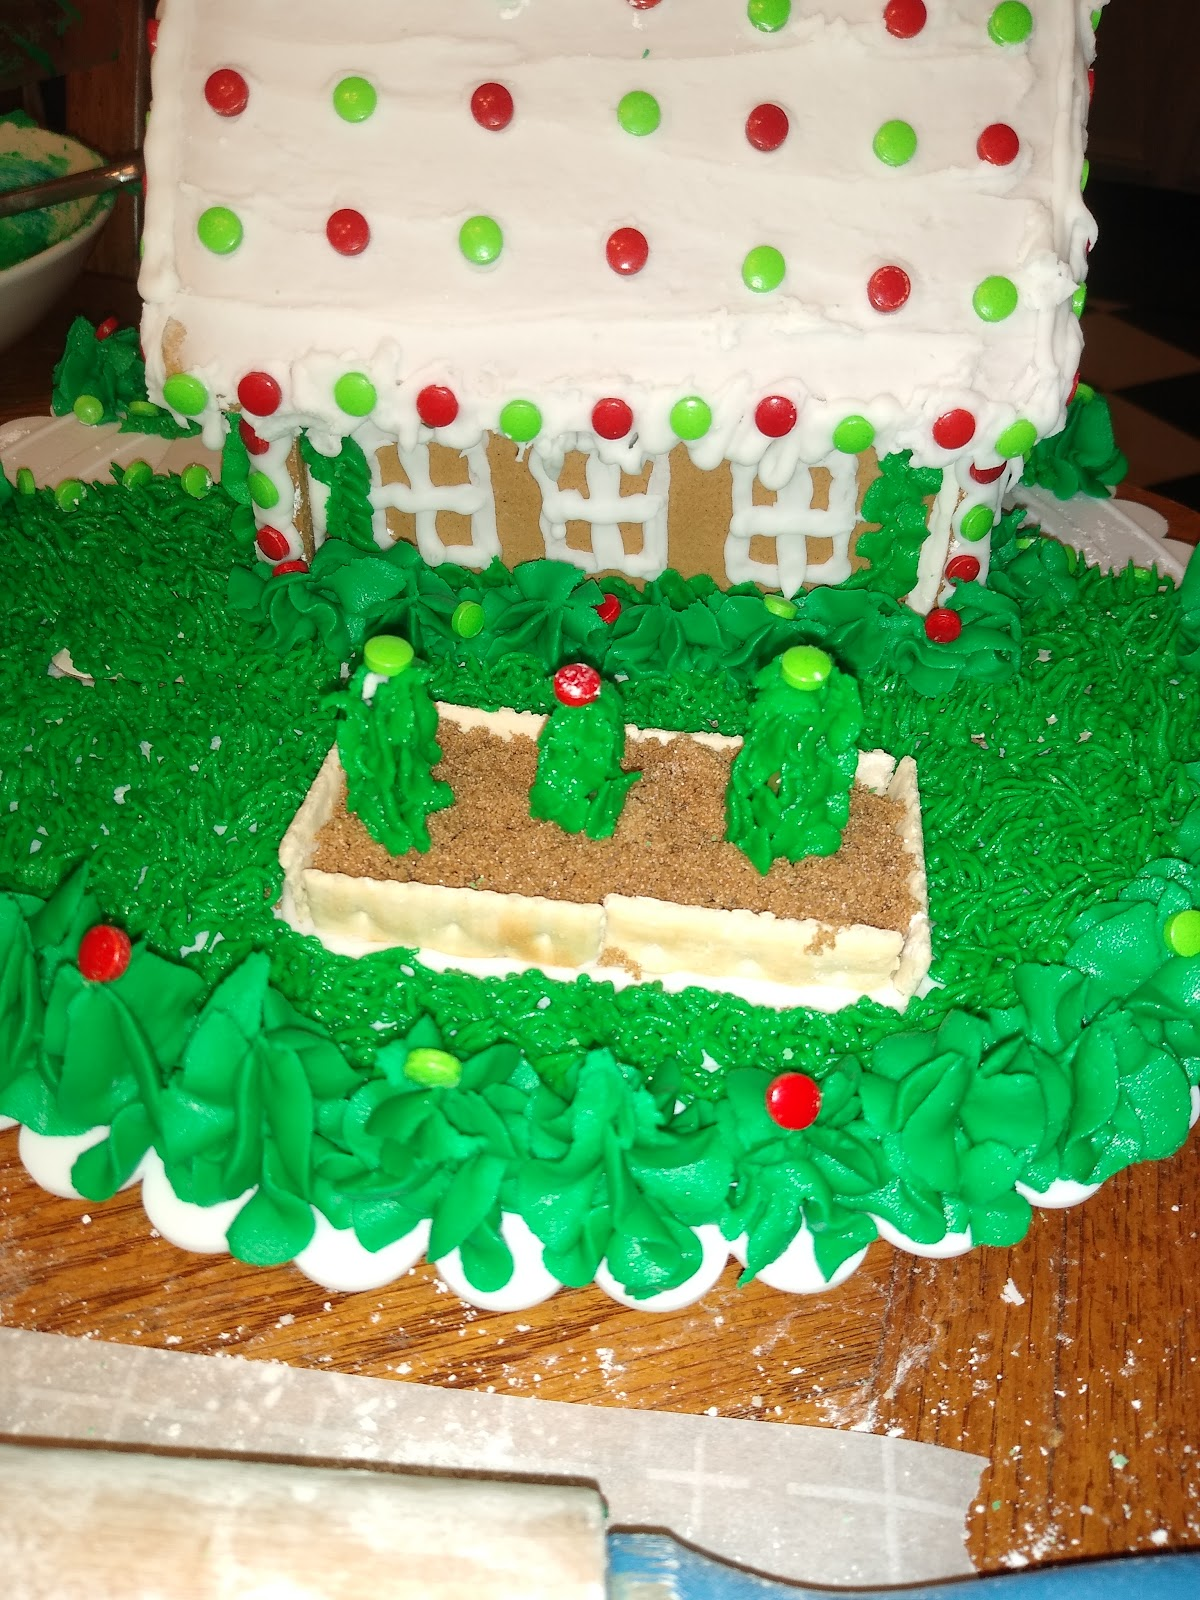 buttercream frosting grass and trees